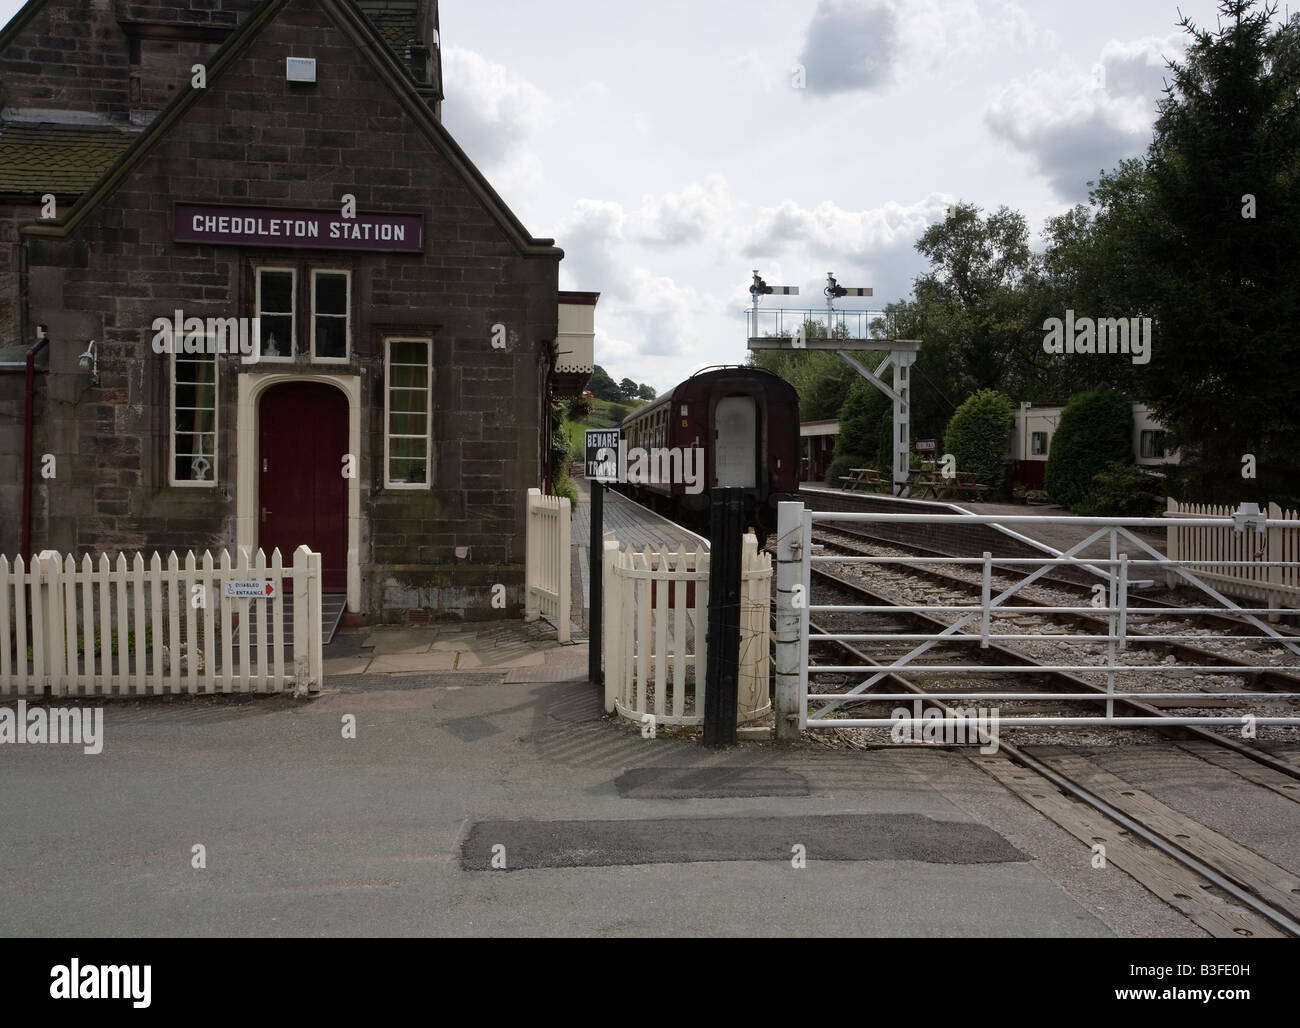 Cheddleton station on the Churnet Valley railway Staffordshire - Stock Image